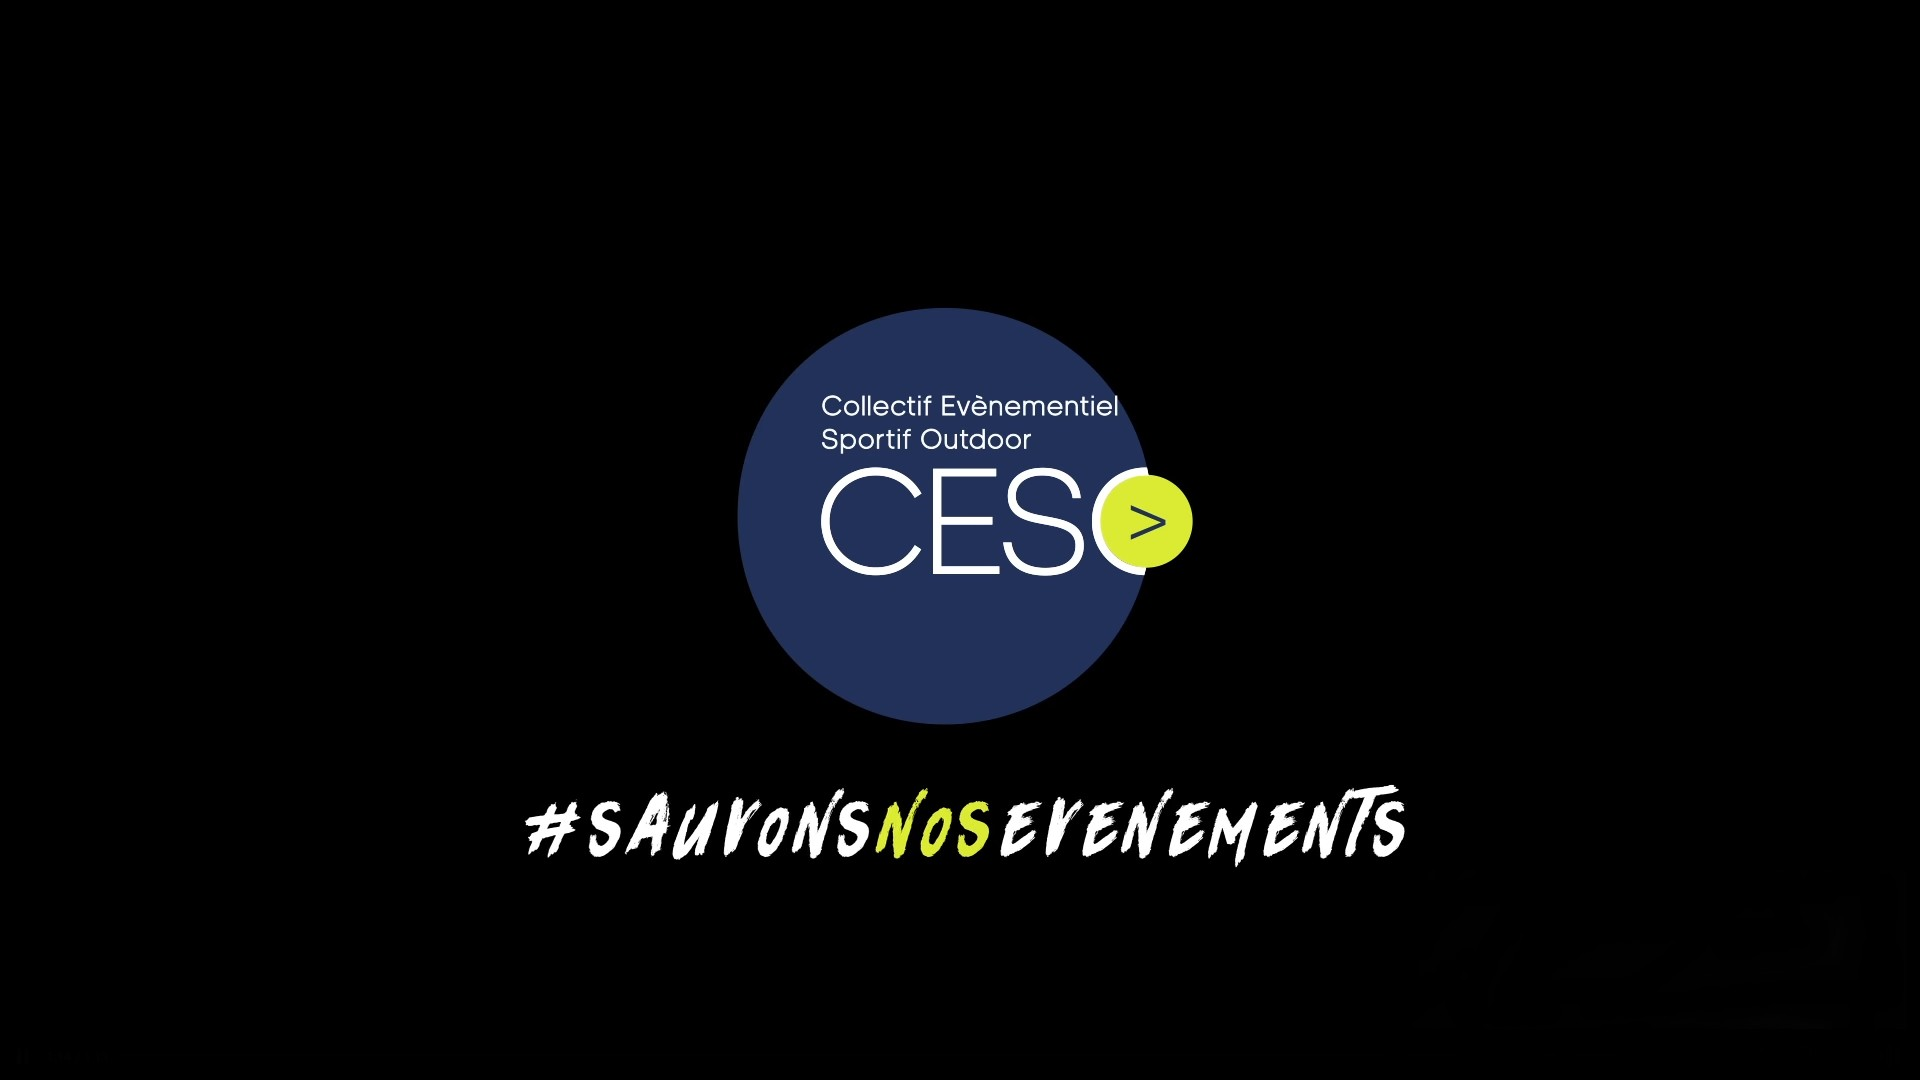 Collectif Evenementiel Sportif Outdoor (CESO) logo